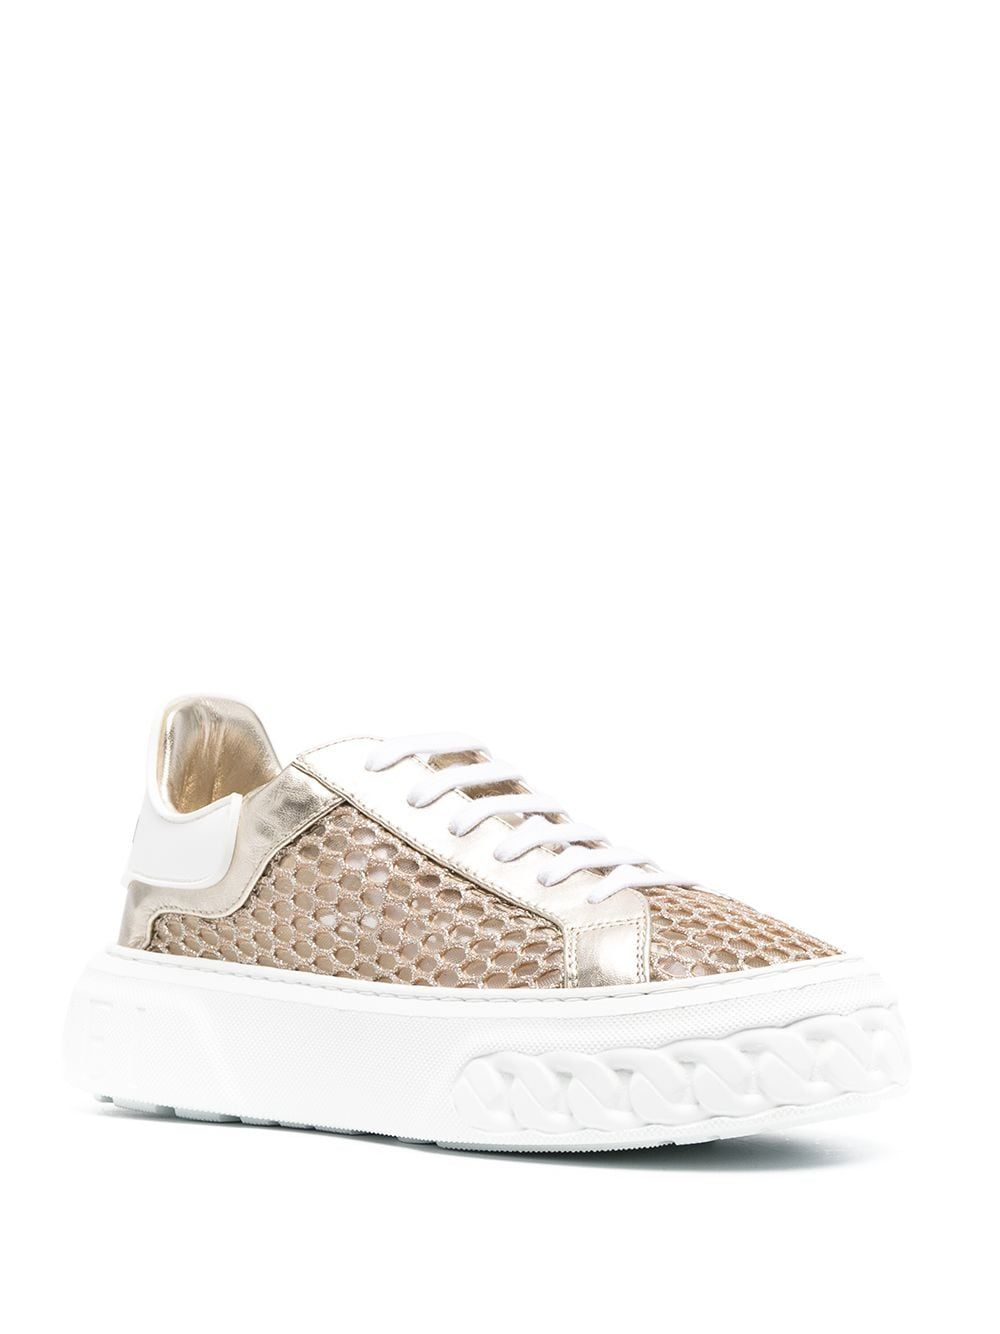 CASADEI Leathers CASADEI WOMEN'S GOLD LEATHER SNEAKERS